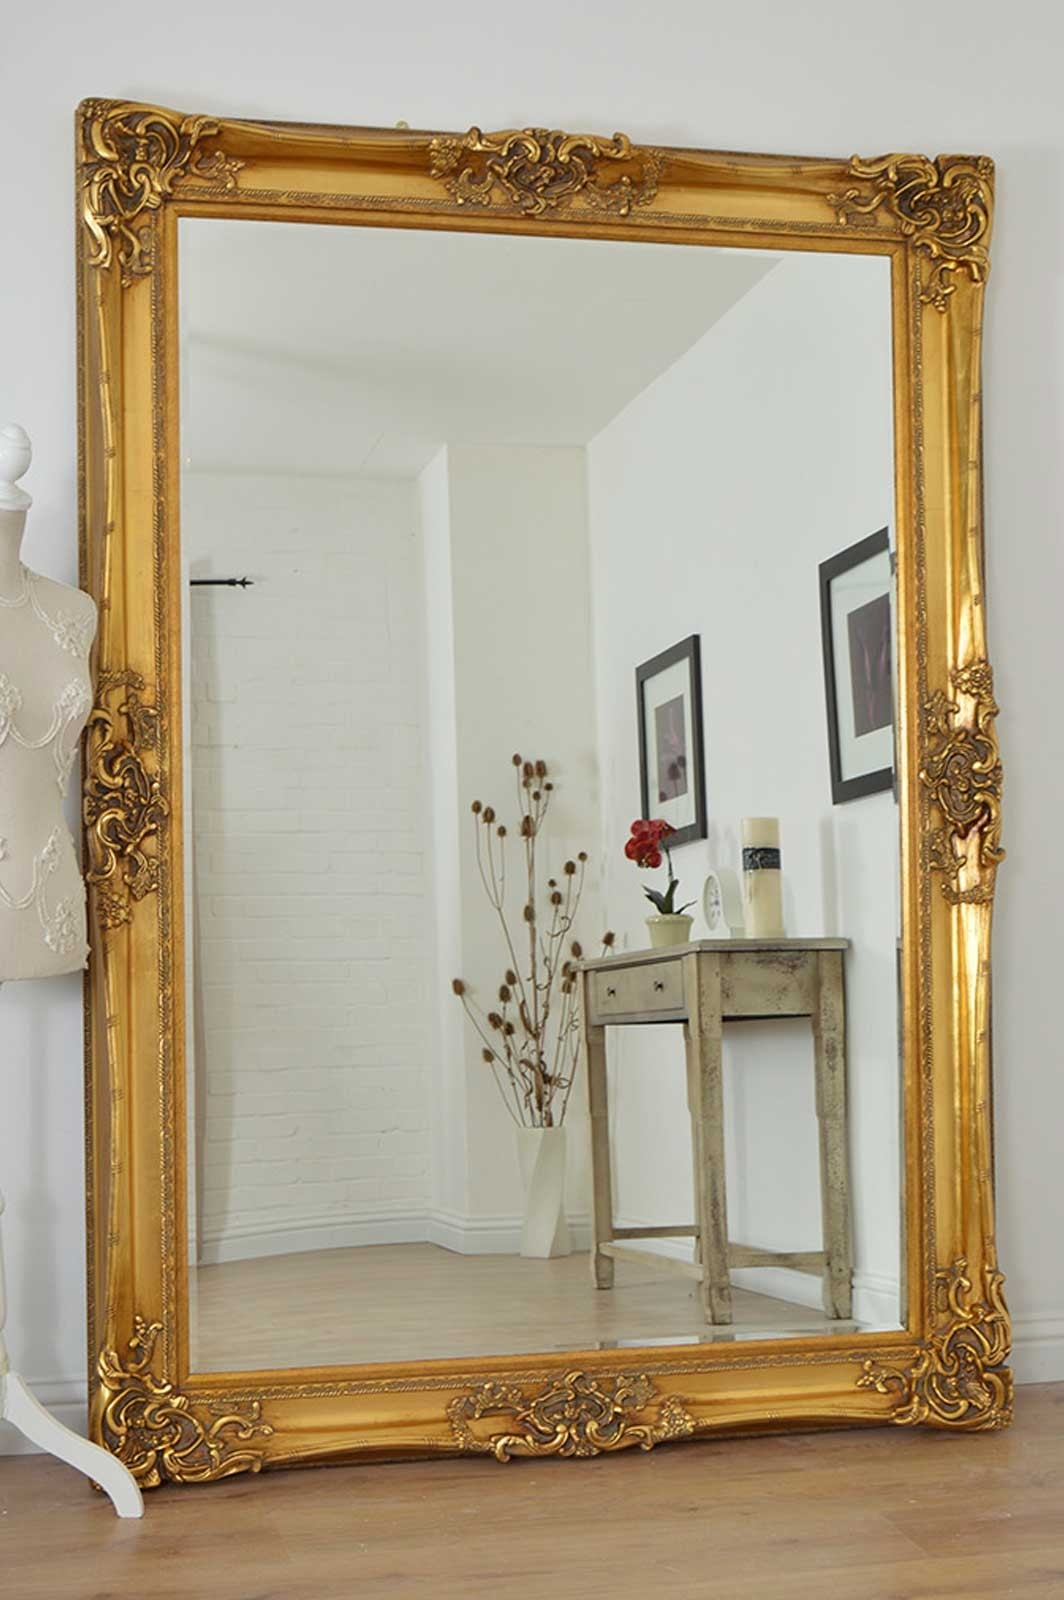 Large Ornate Bathroom Mirrors1064 X 1600